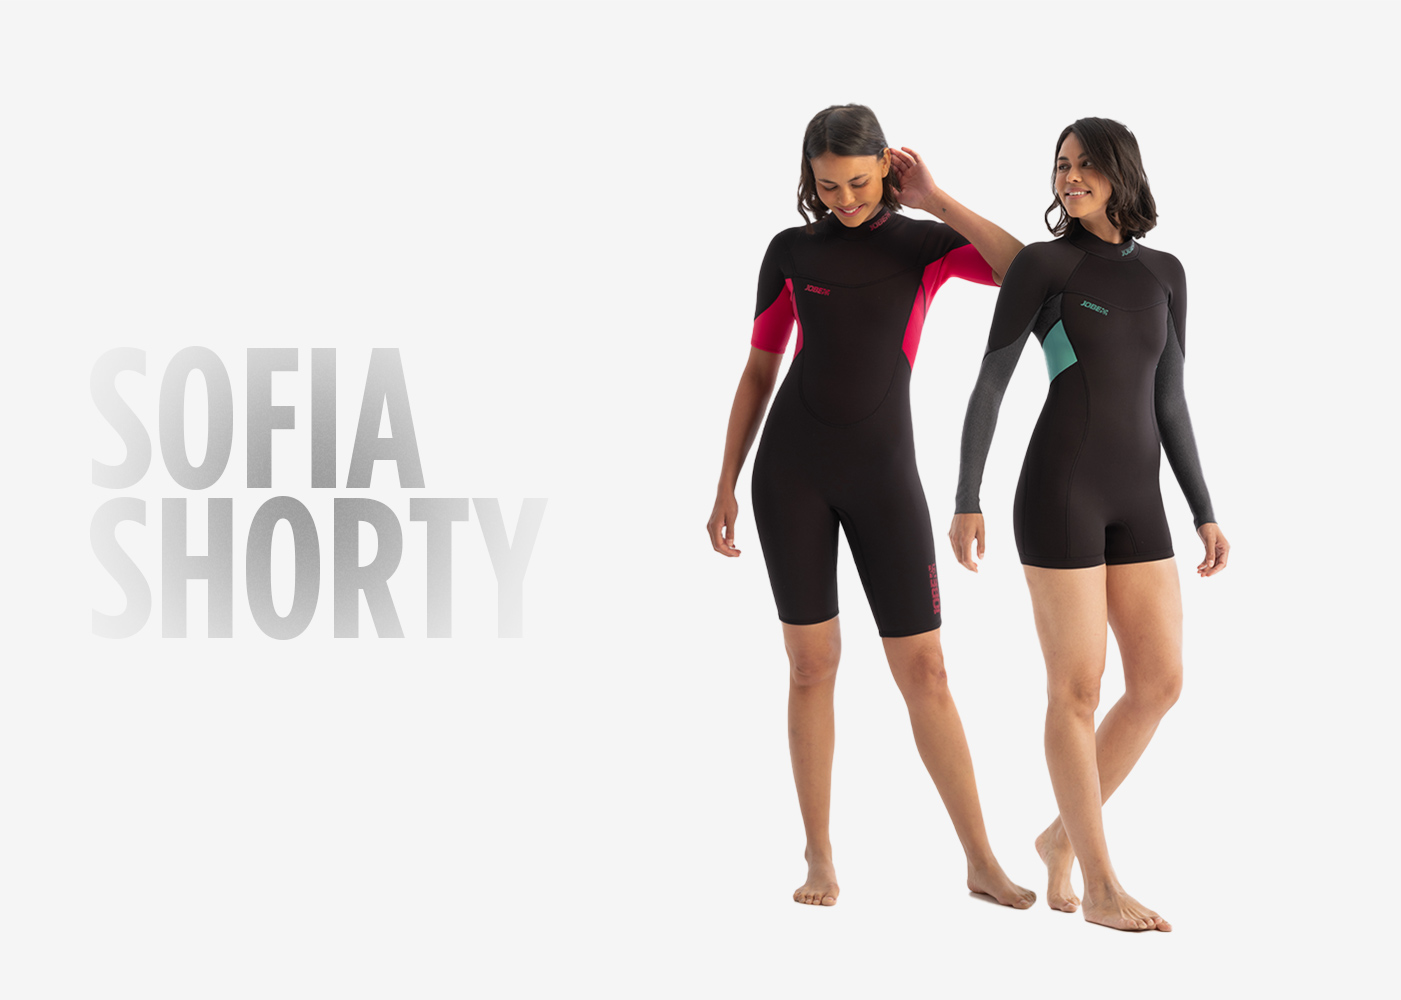 Jobe Sofia Shorty Series